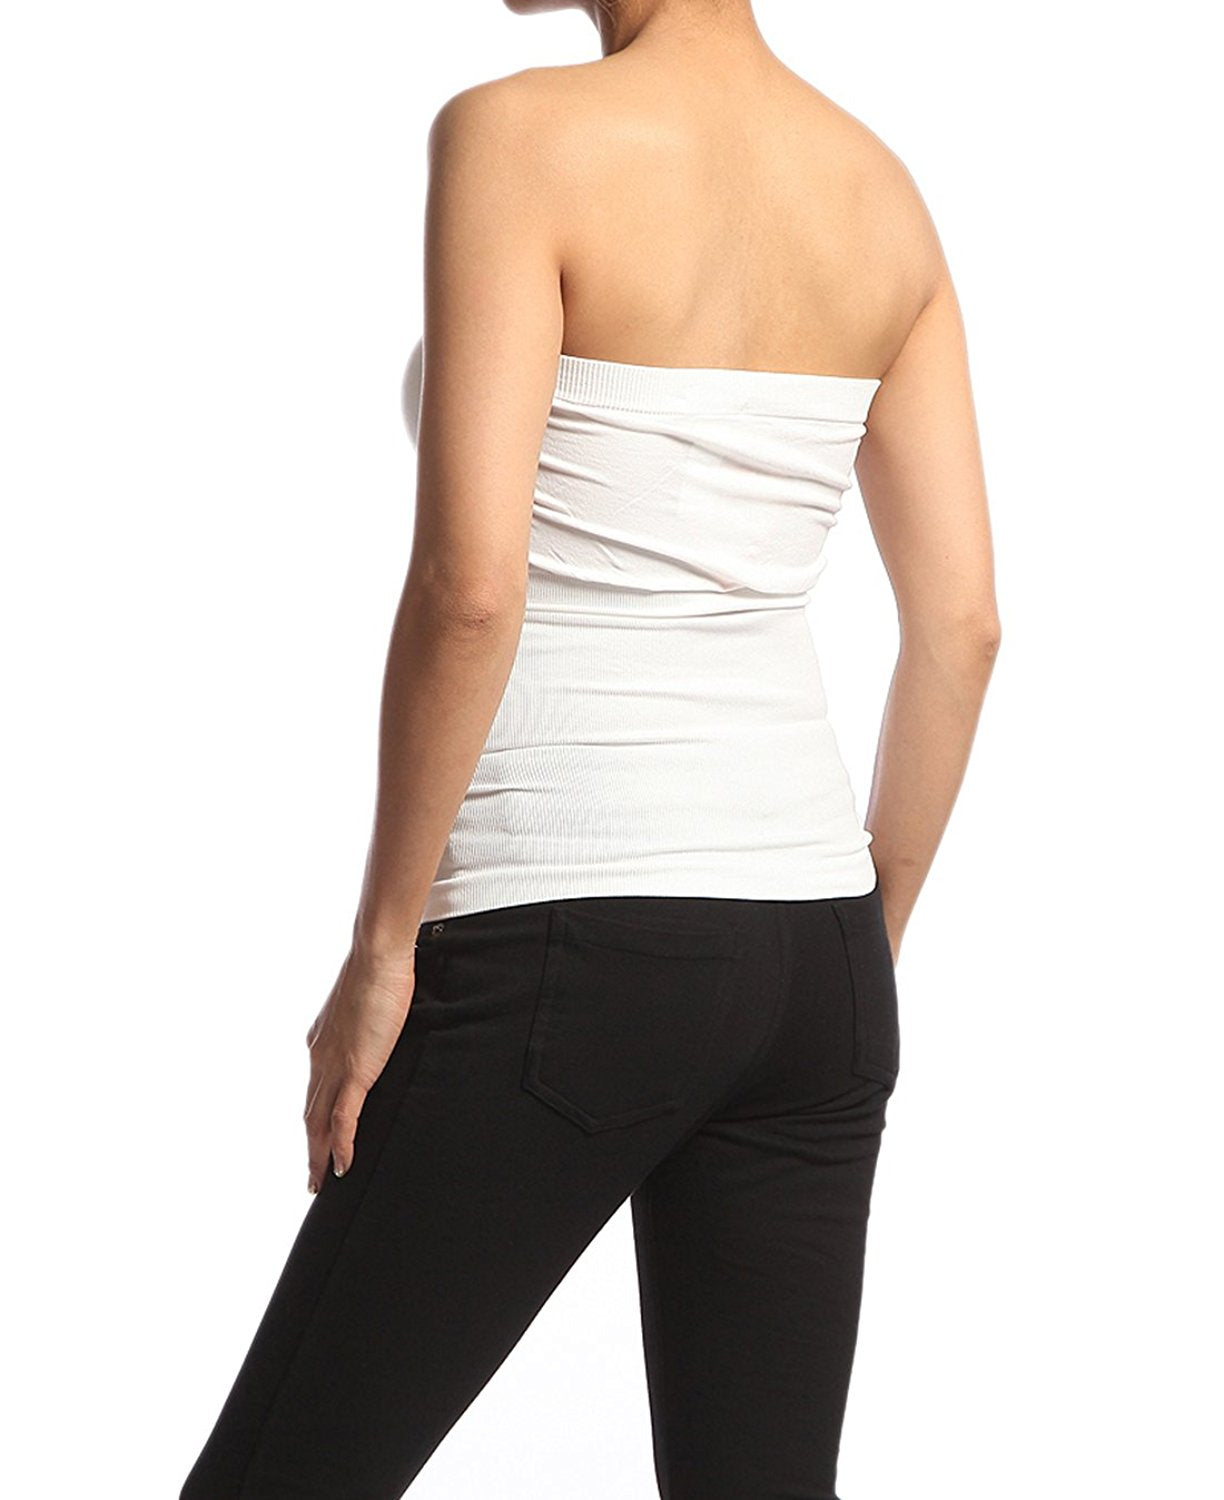 Hollywood Star Fashion Women's Plain Stretch Seamless Strapless Layer Tube Top